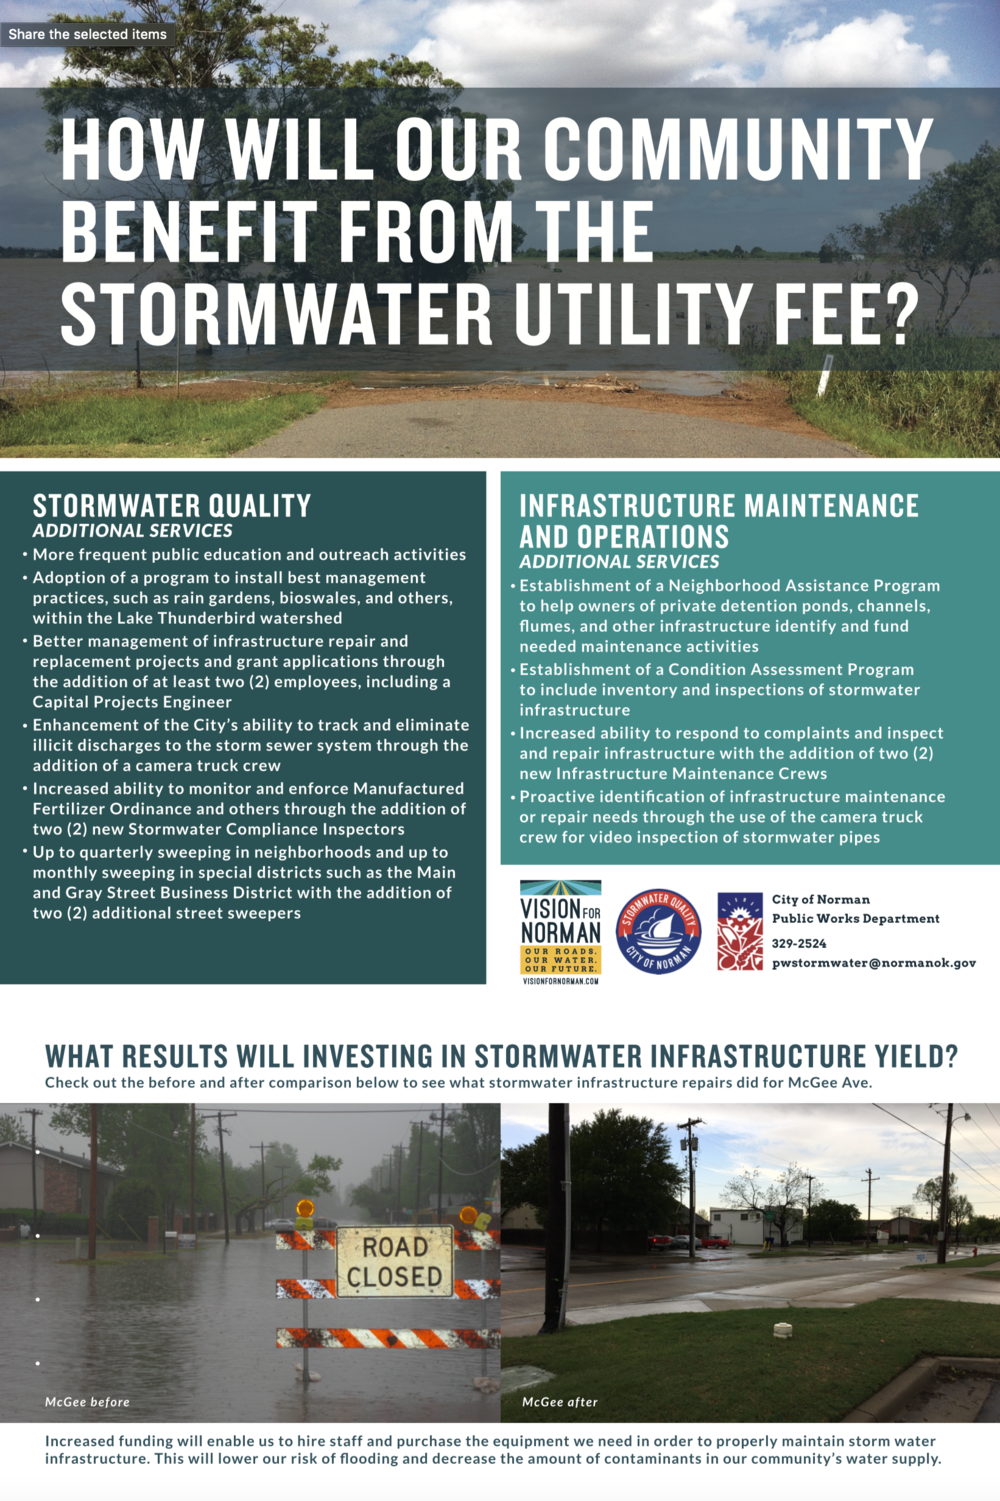 How will a Stormwater Utility benefit our community?